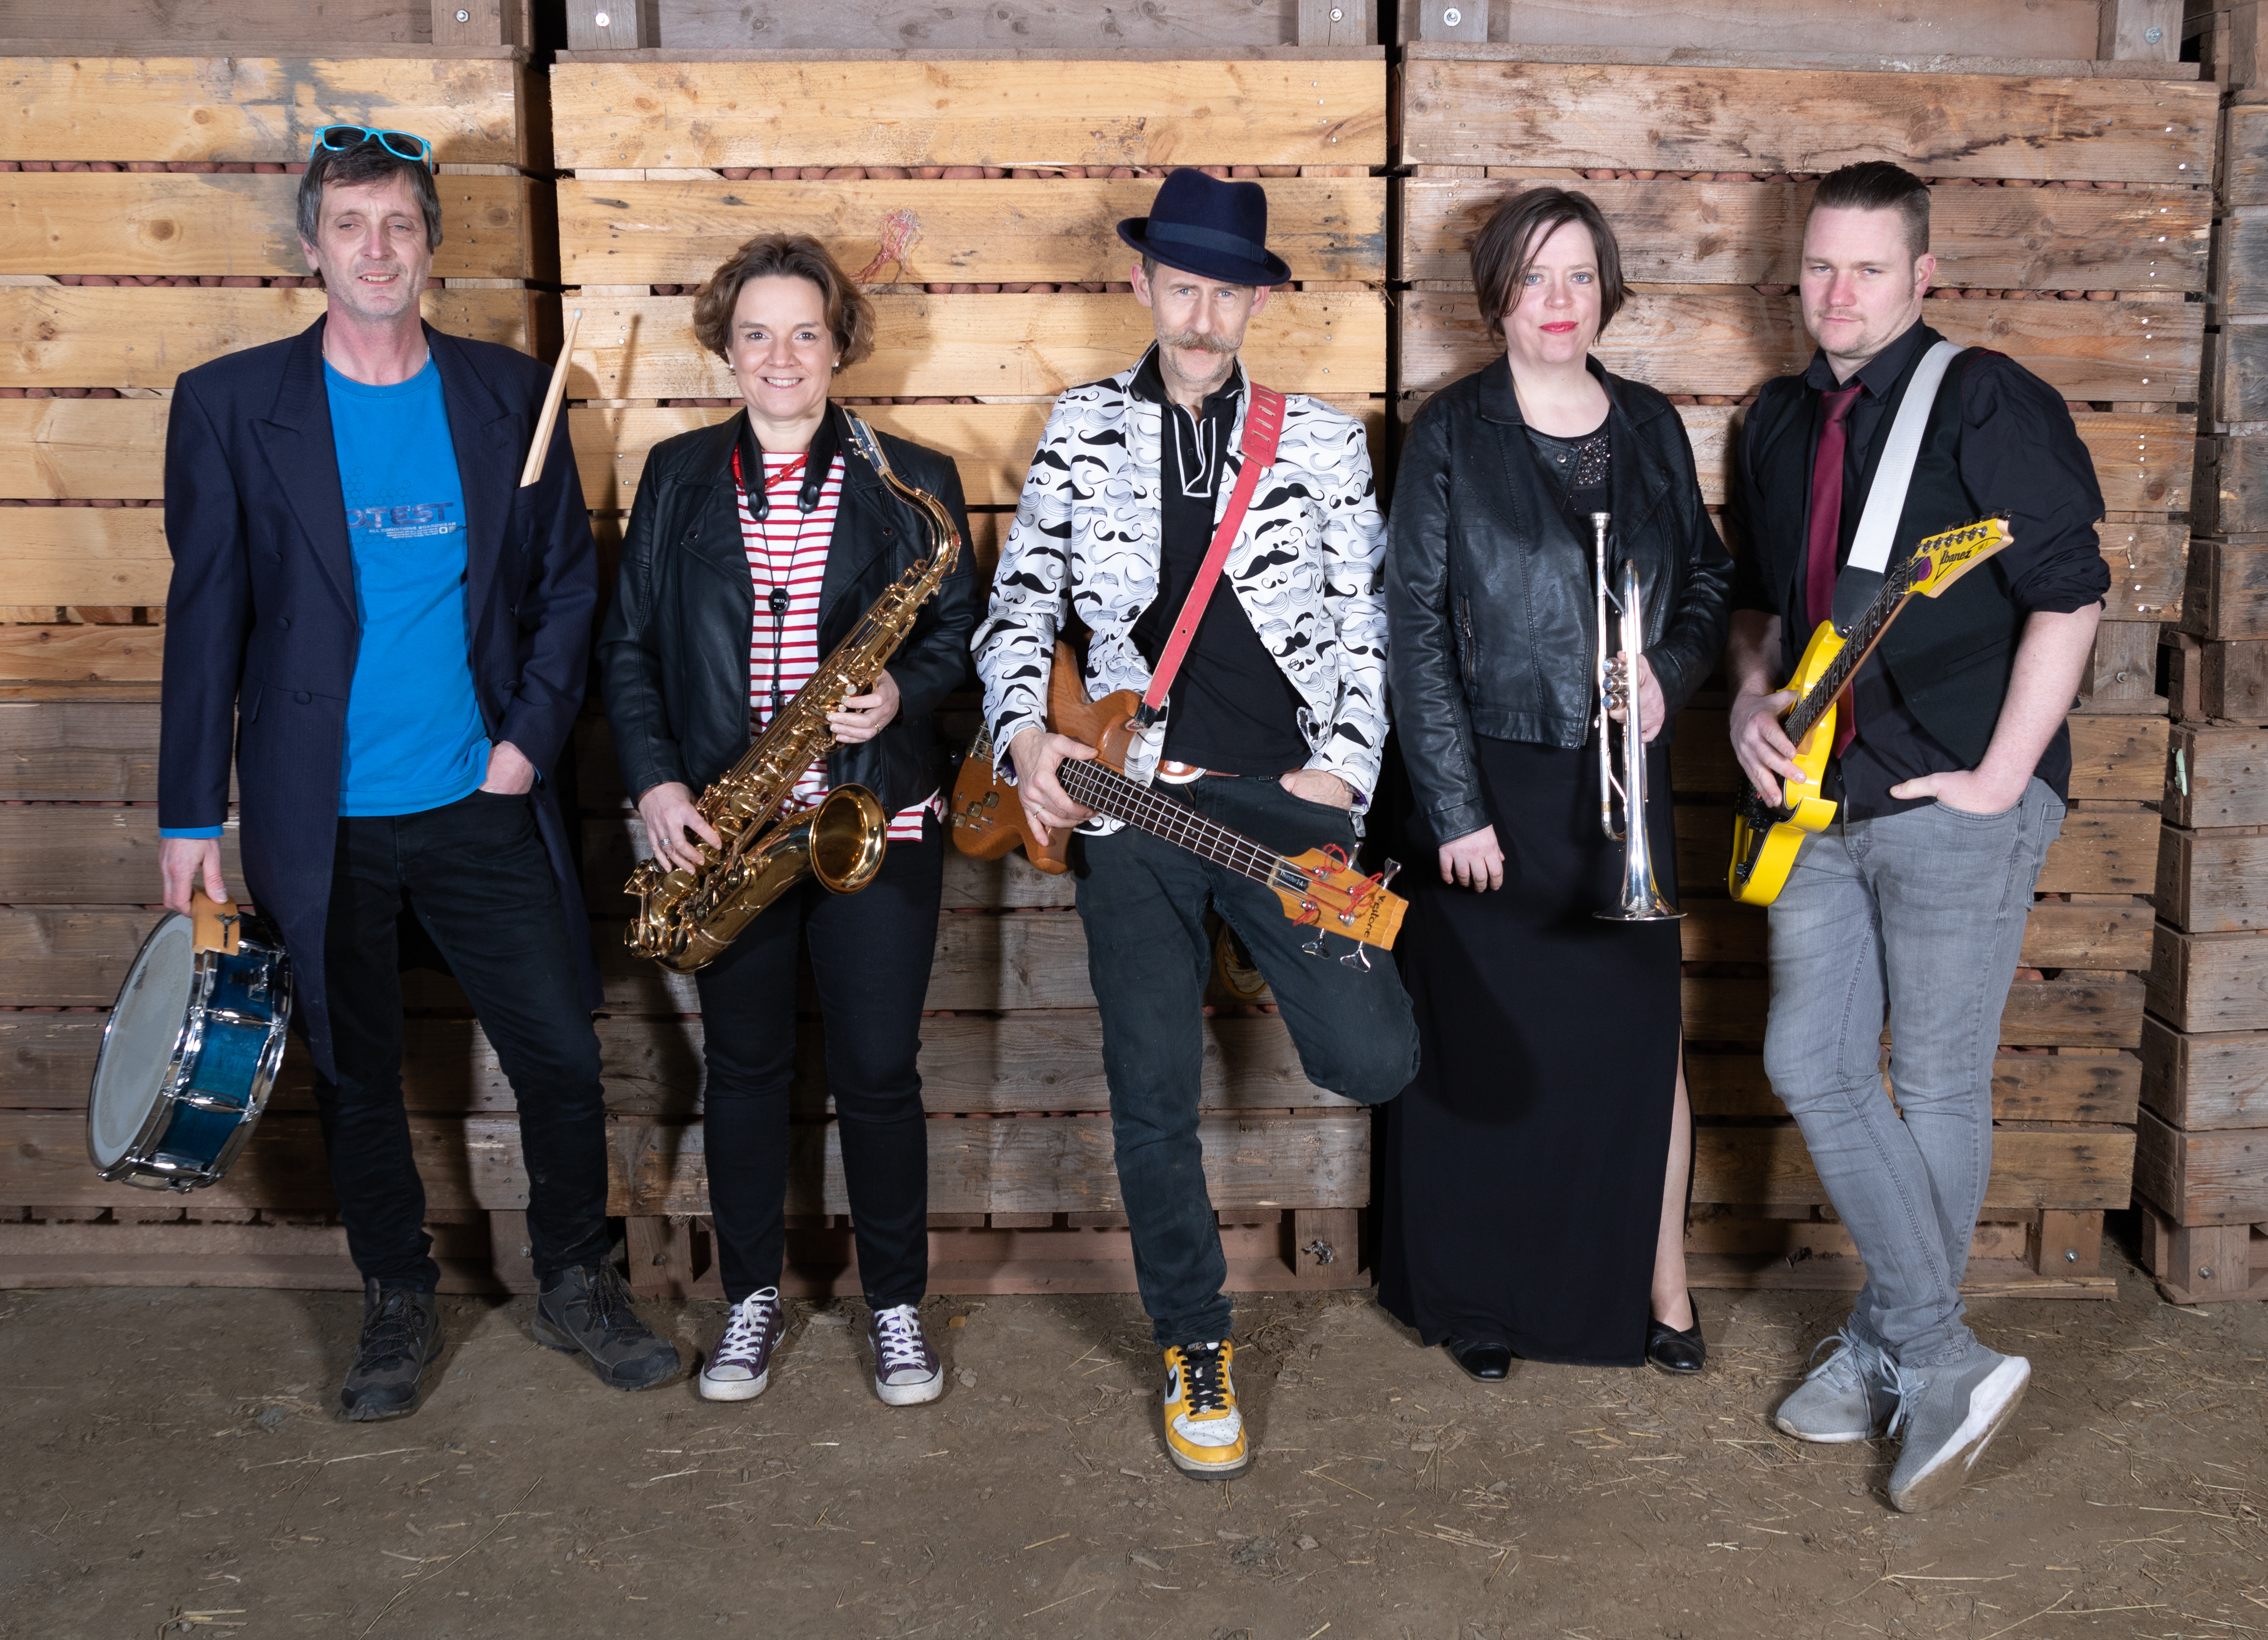 Go Go Skank will play at Porthleven Food Festival